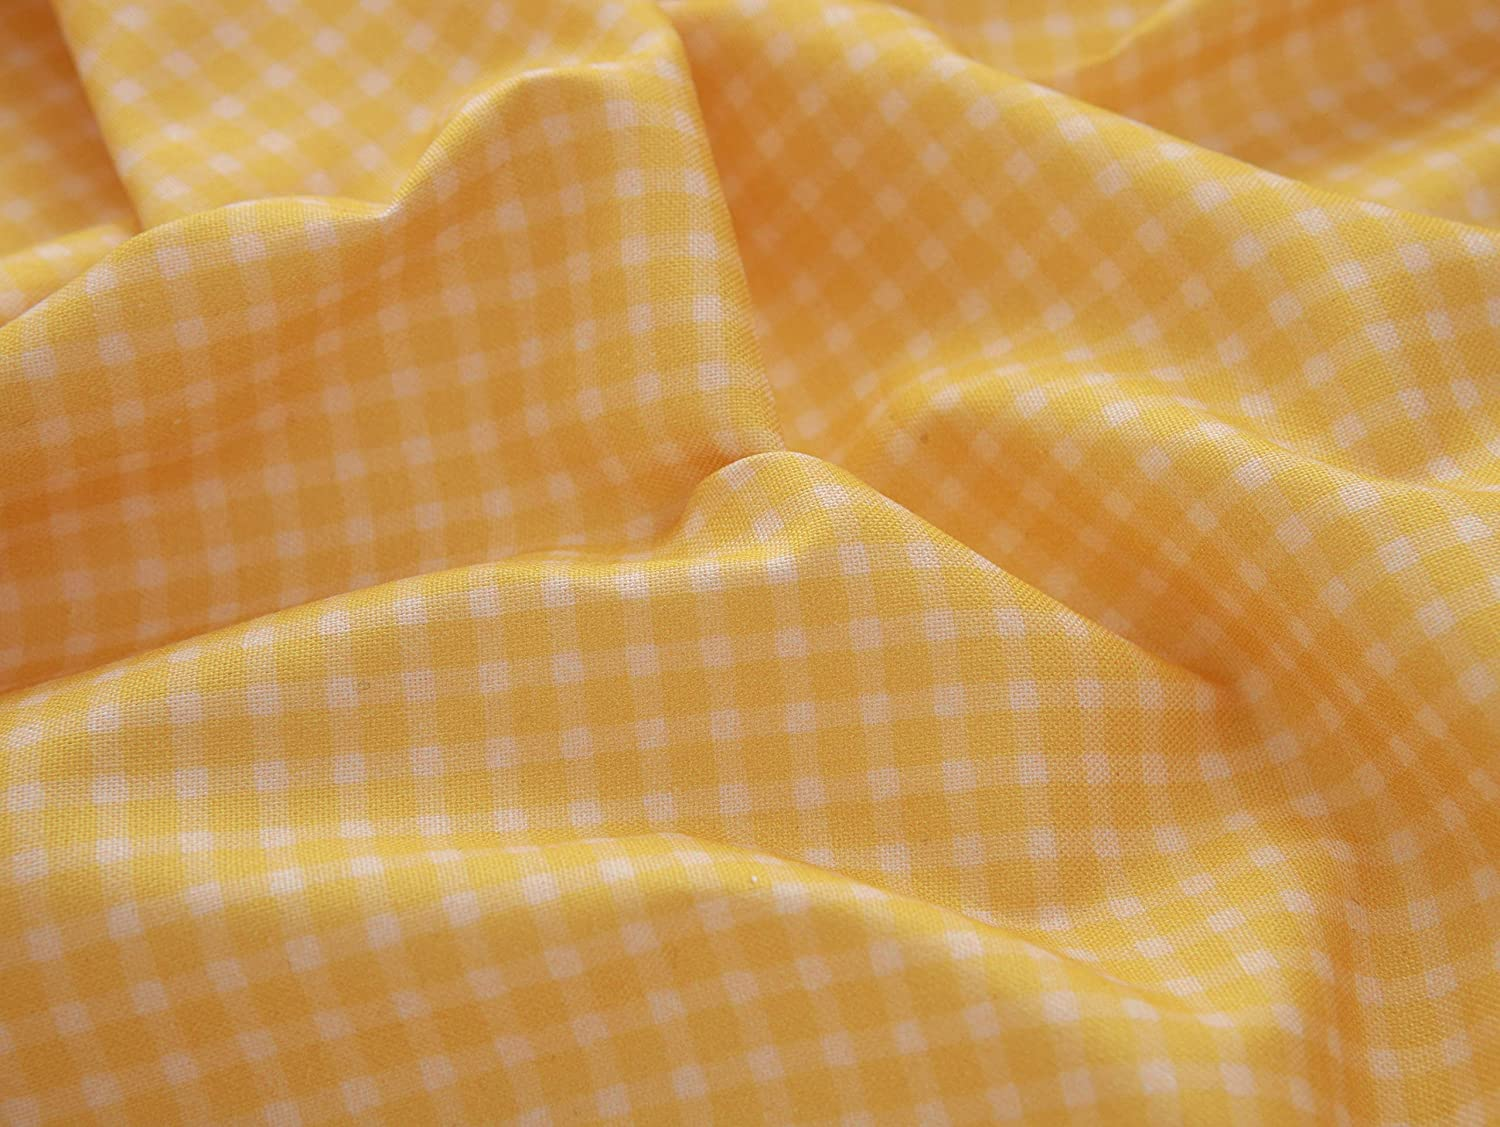 COTTONVILL EMANON Stripe Lazy Gingham 20COUNT Cotton Print Fabric (1yard, C-Gingham-03-Yellow)